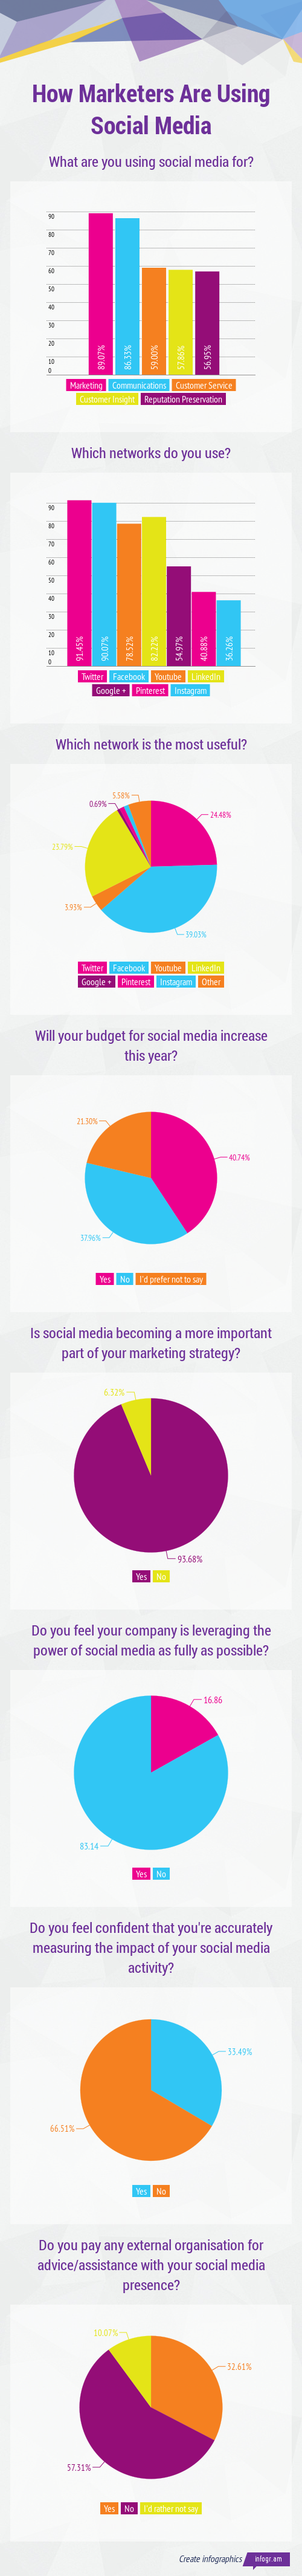 How_Marketers_Are_Using_Social_Media